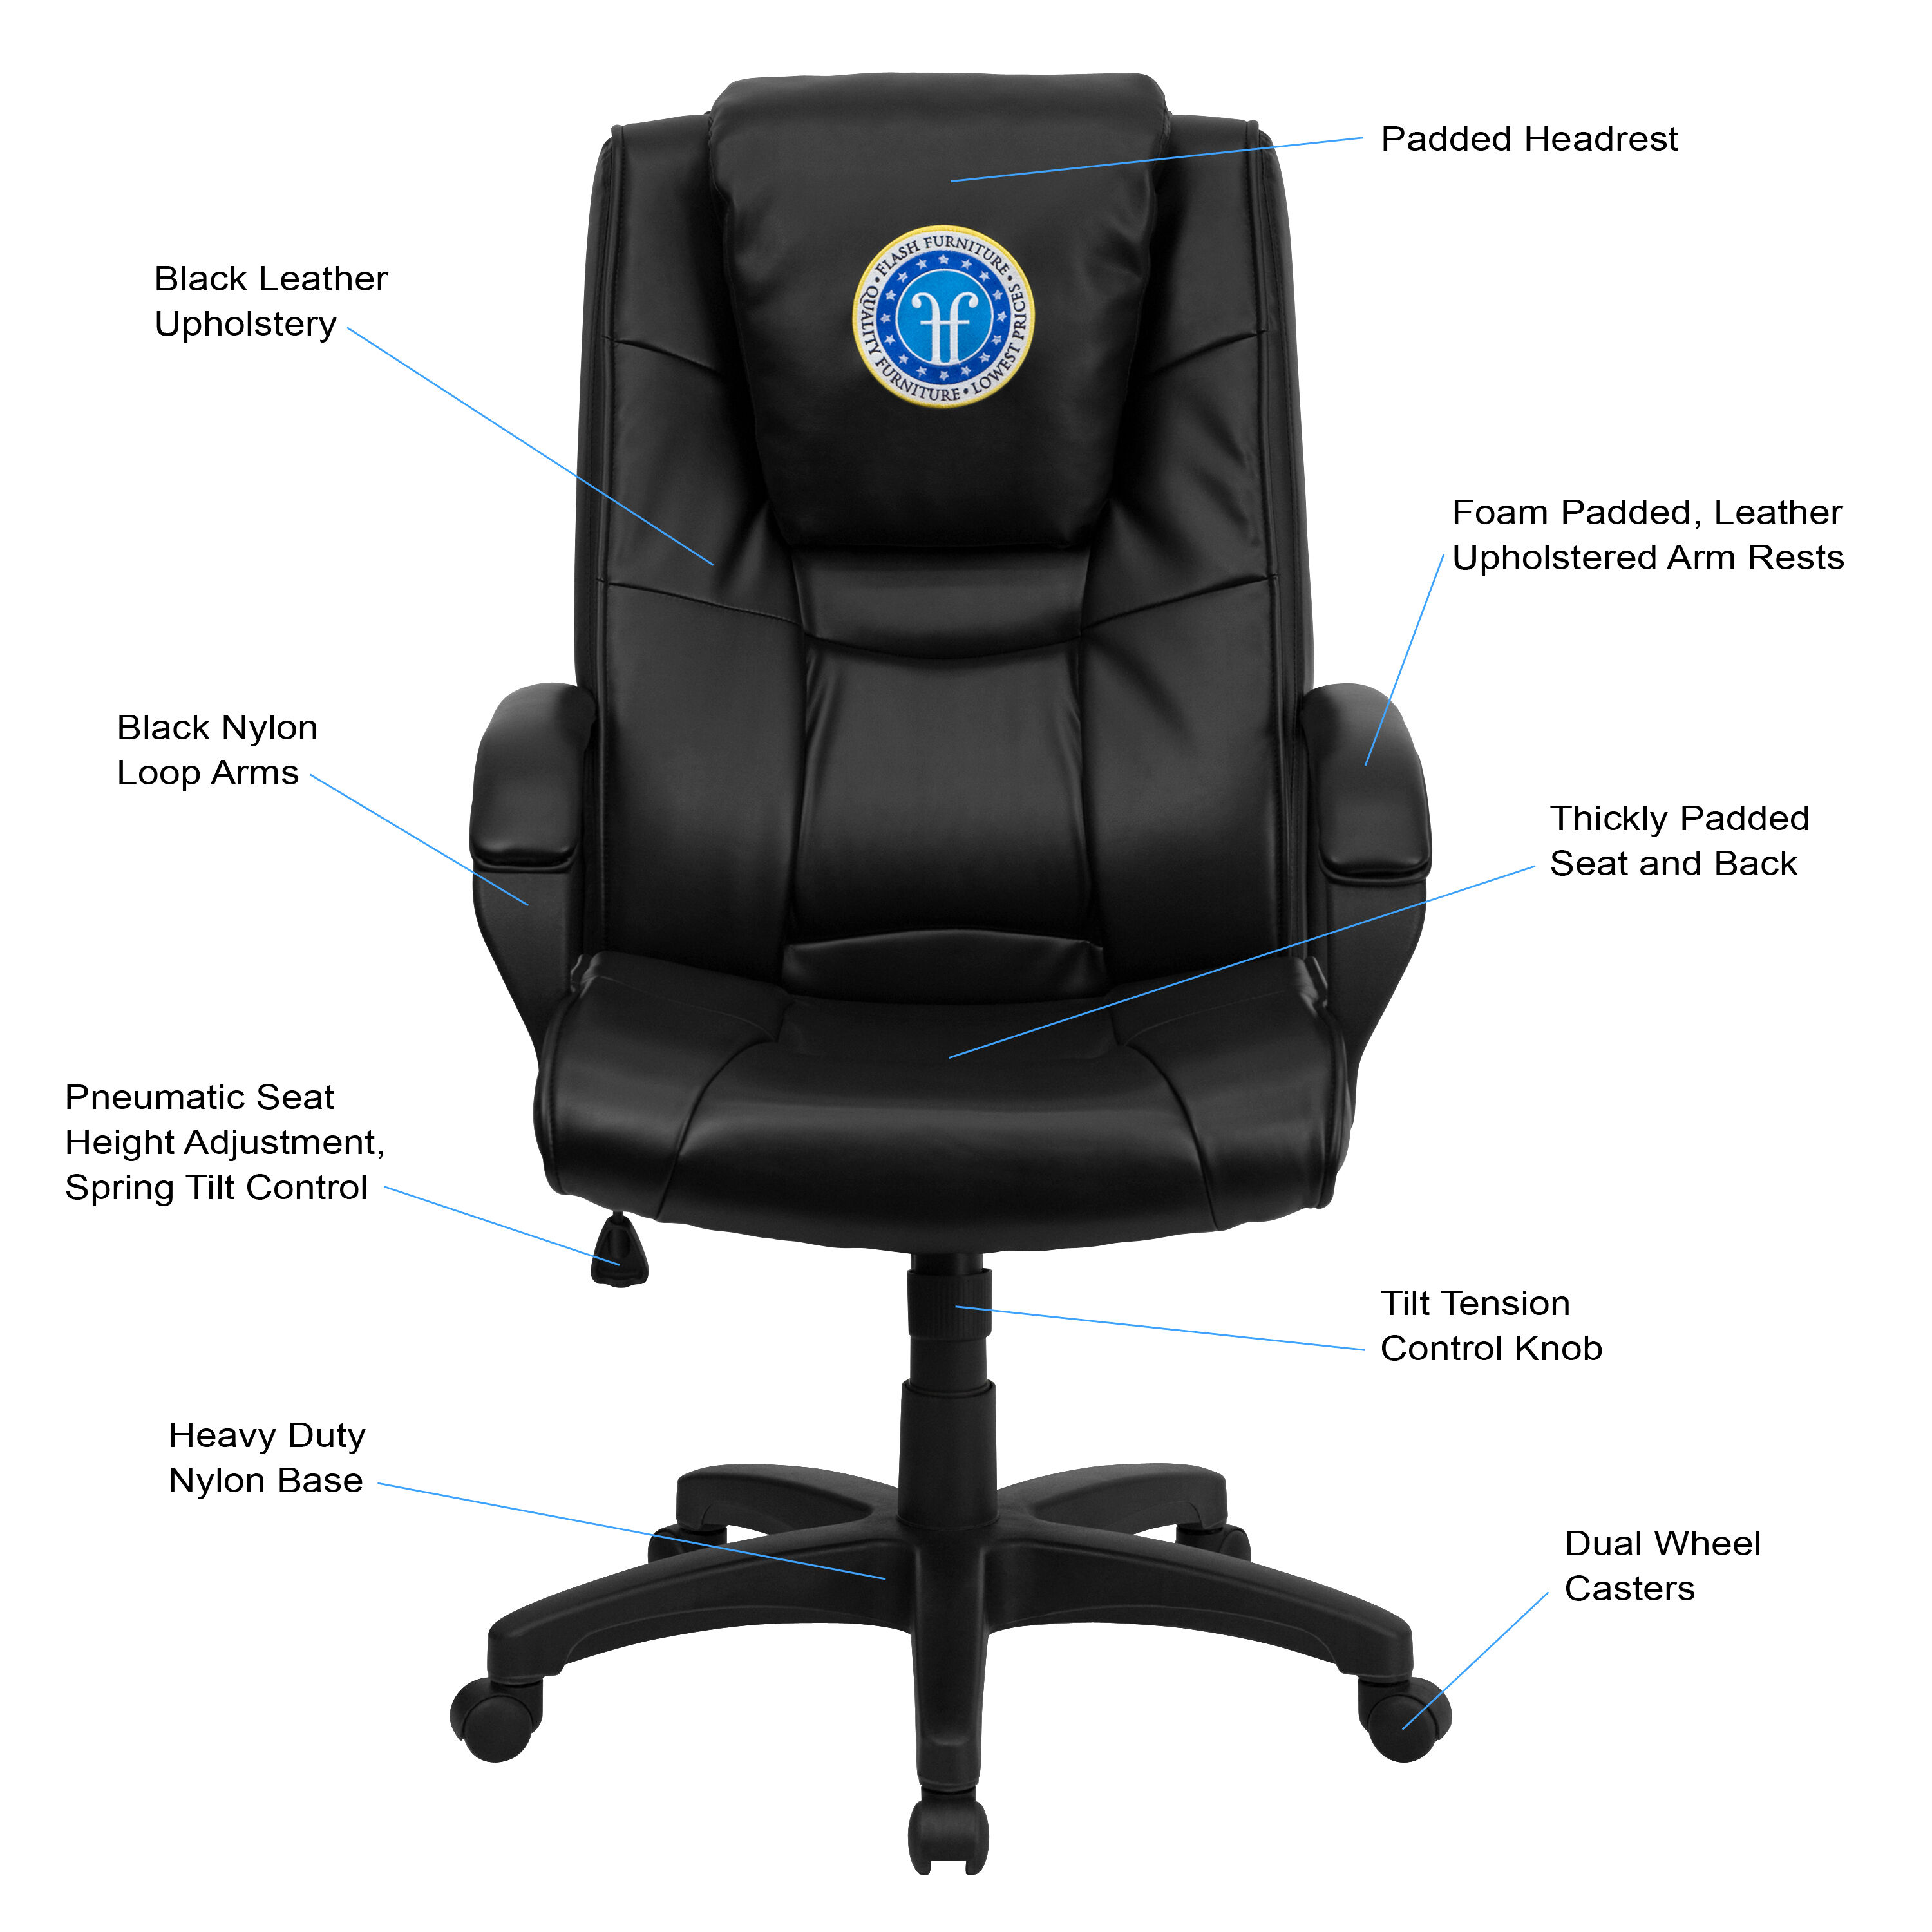 Executive Leather Chair Dreamweaver Personalized Black Leather Executive Swivel Office Chair With Arms